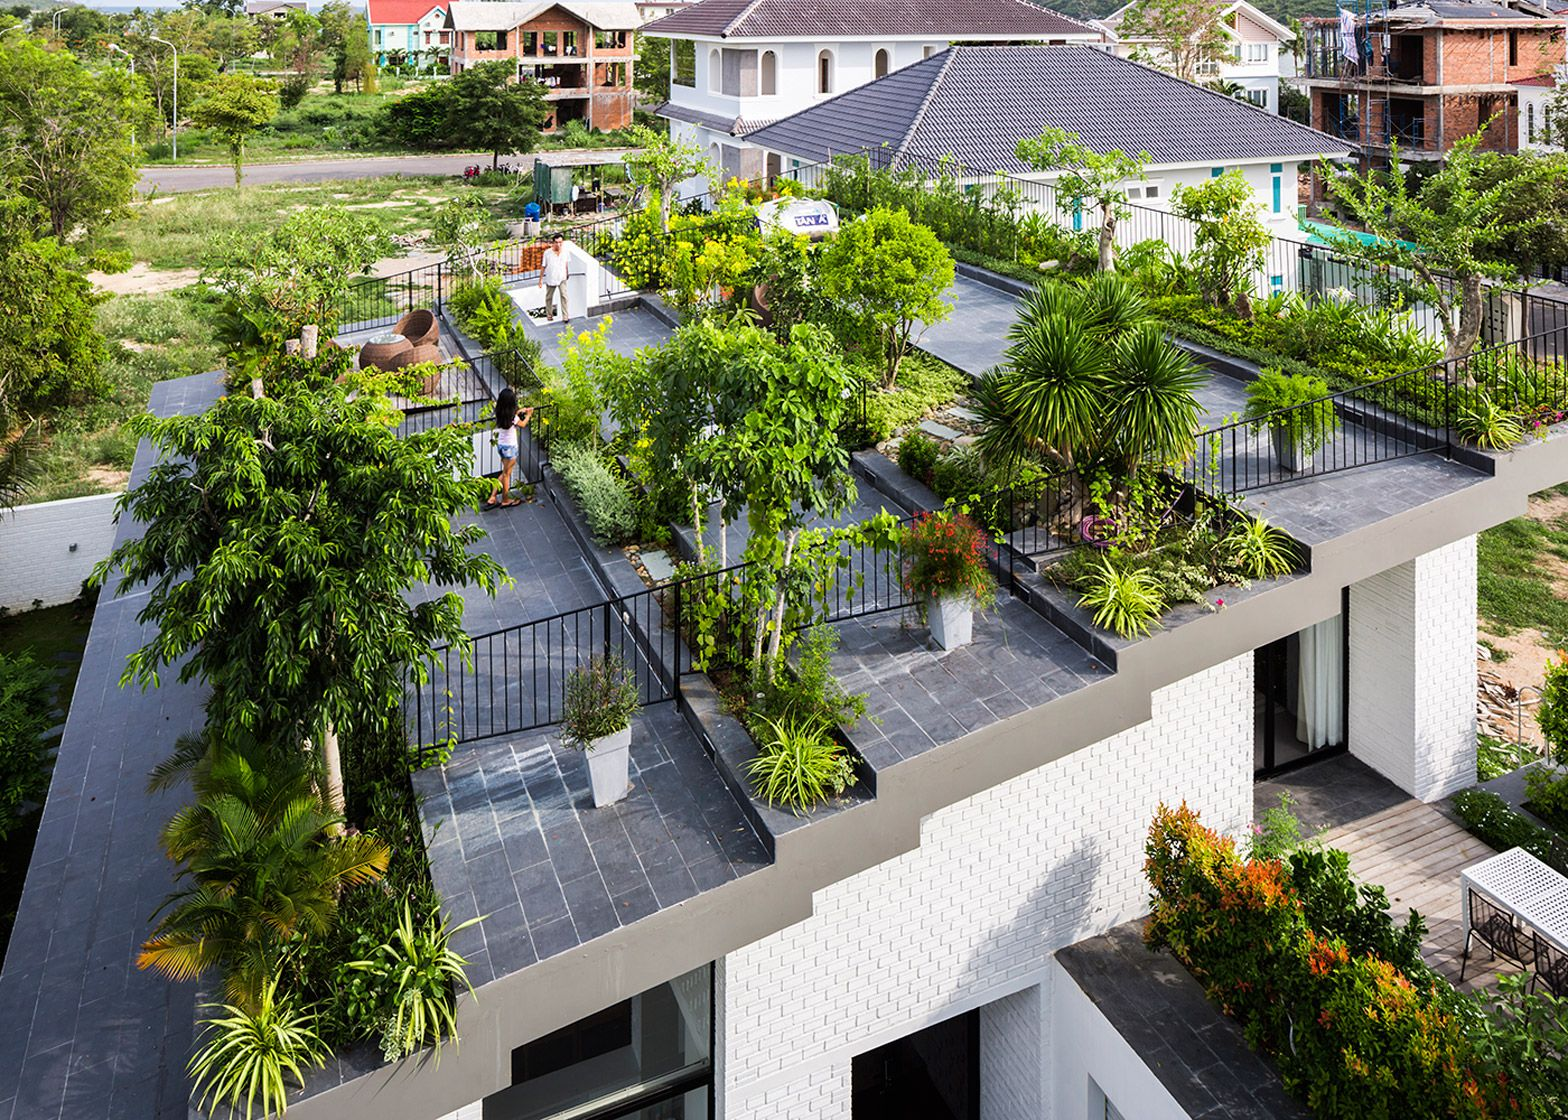 Stepped garden tops house by vo trong nghia and masaaki for Rooftop landscape design